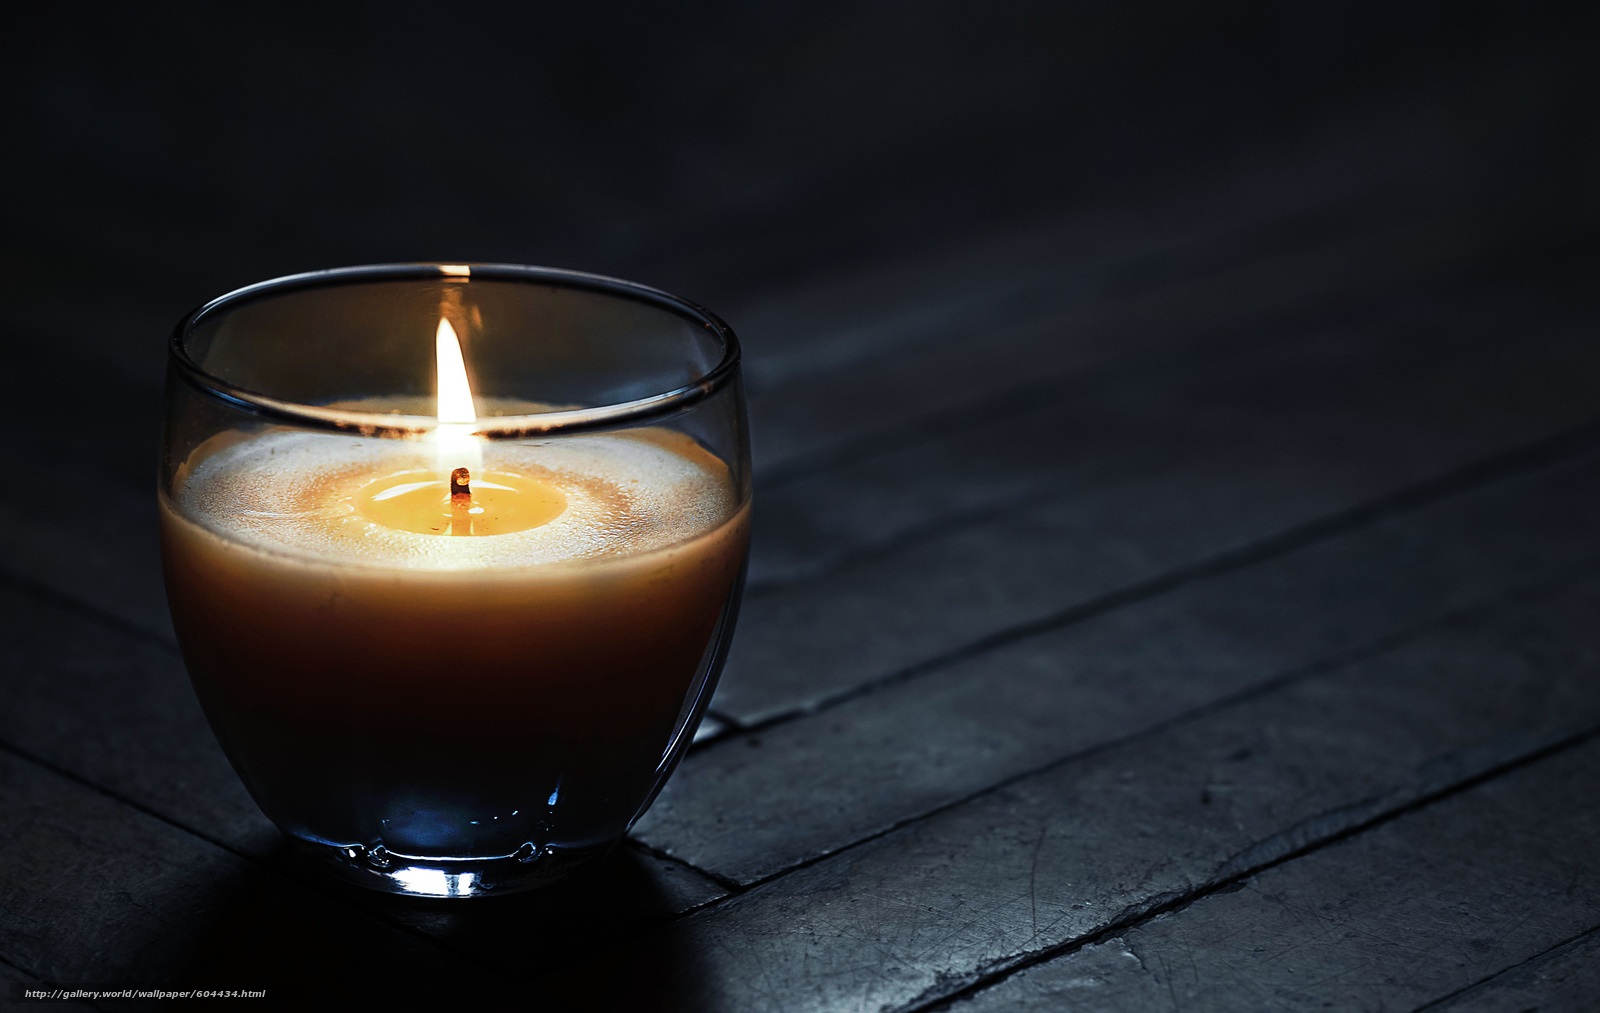 Download wallpaper candle,  darkness,  black,  Gray free desktop wallpaper in the resolution 6000x3800 — picture №604434